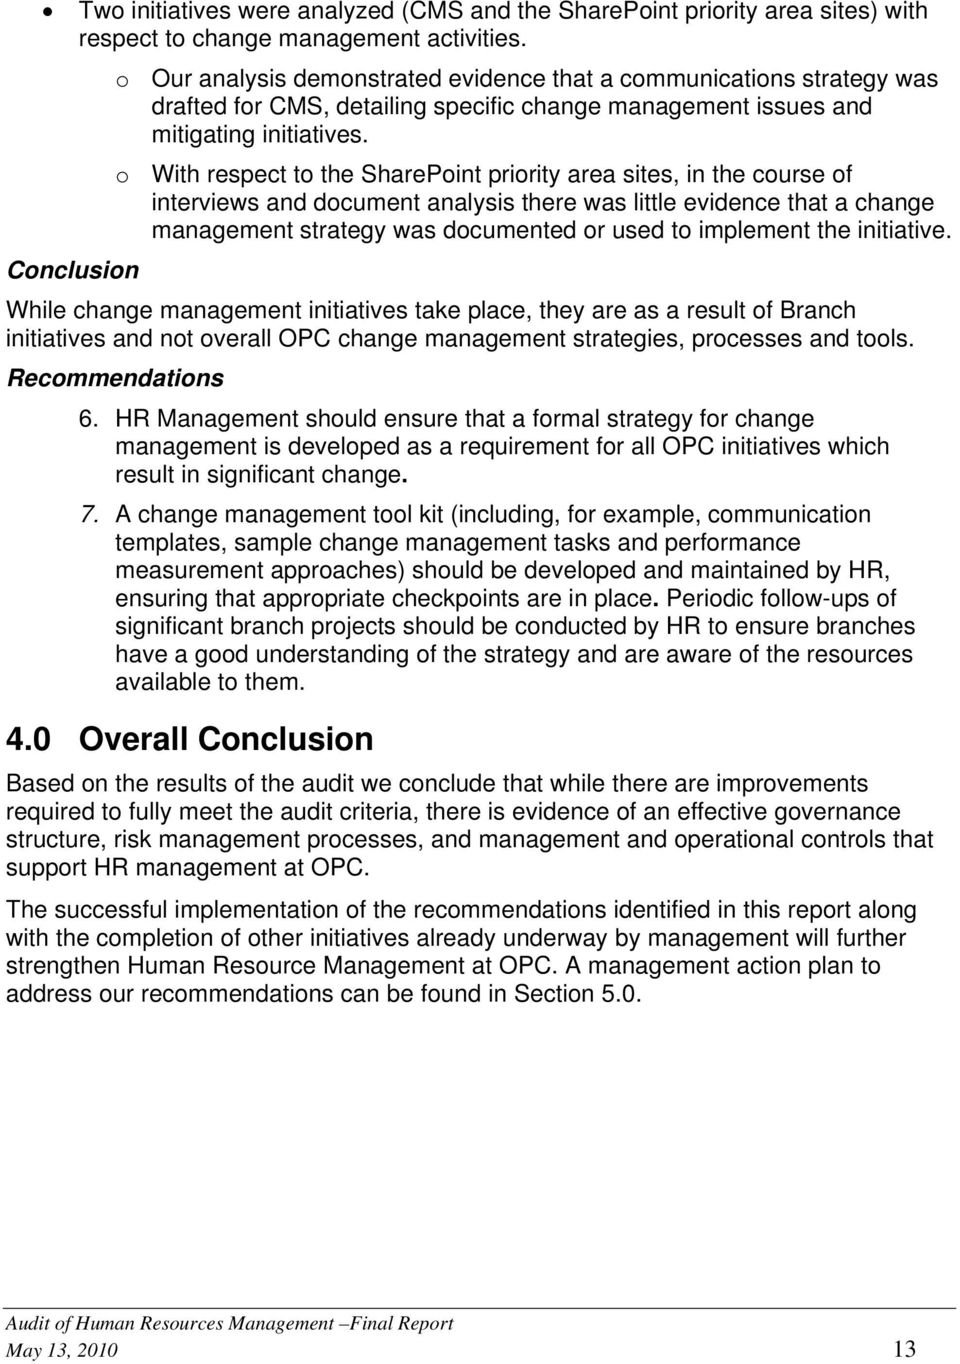 o With respect to the SharePoint priority area sites, in the course of interviews and document analysis there was little evidence that a change management strategy was documented or used to implement